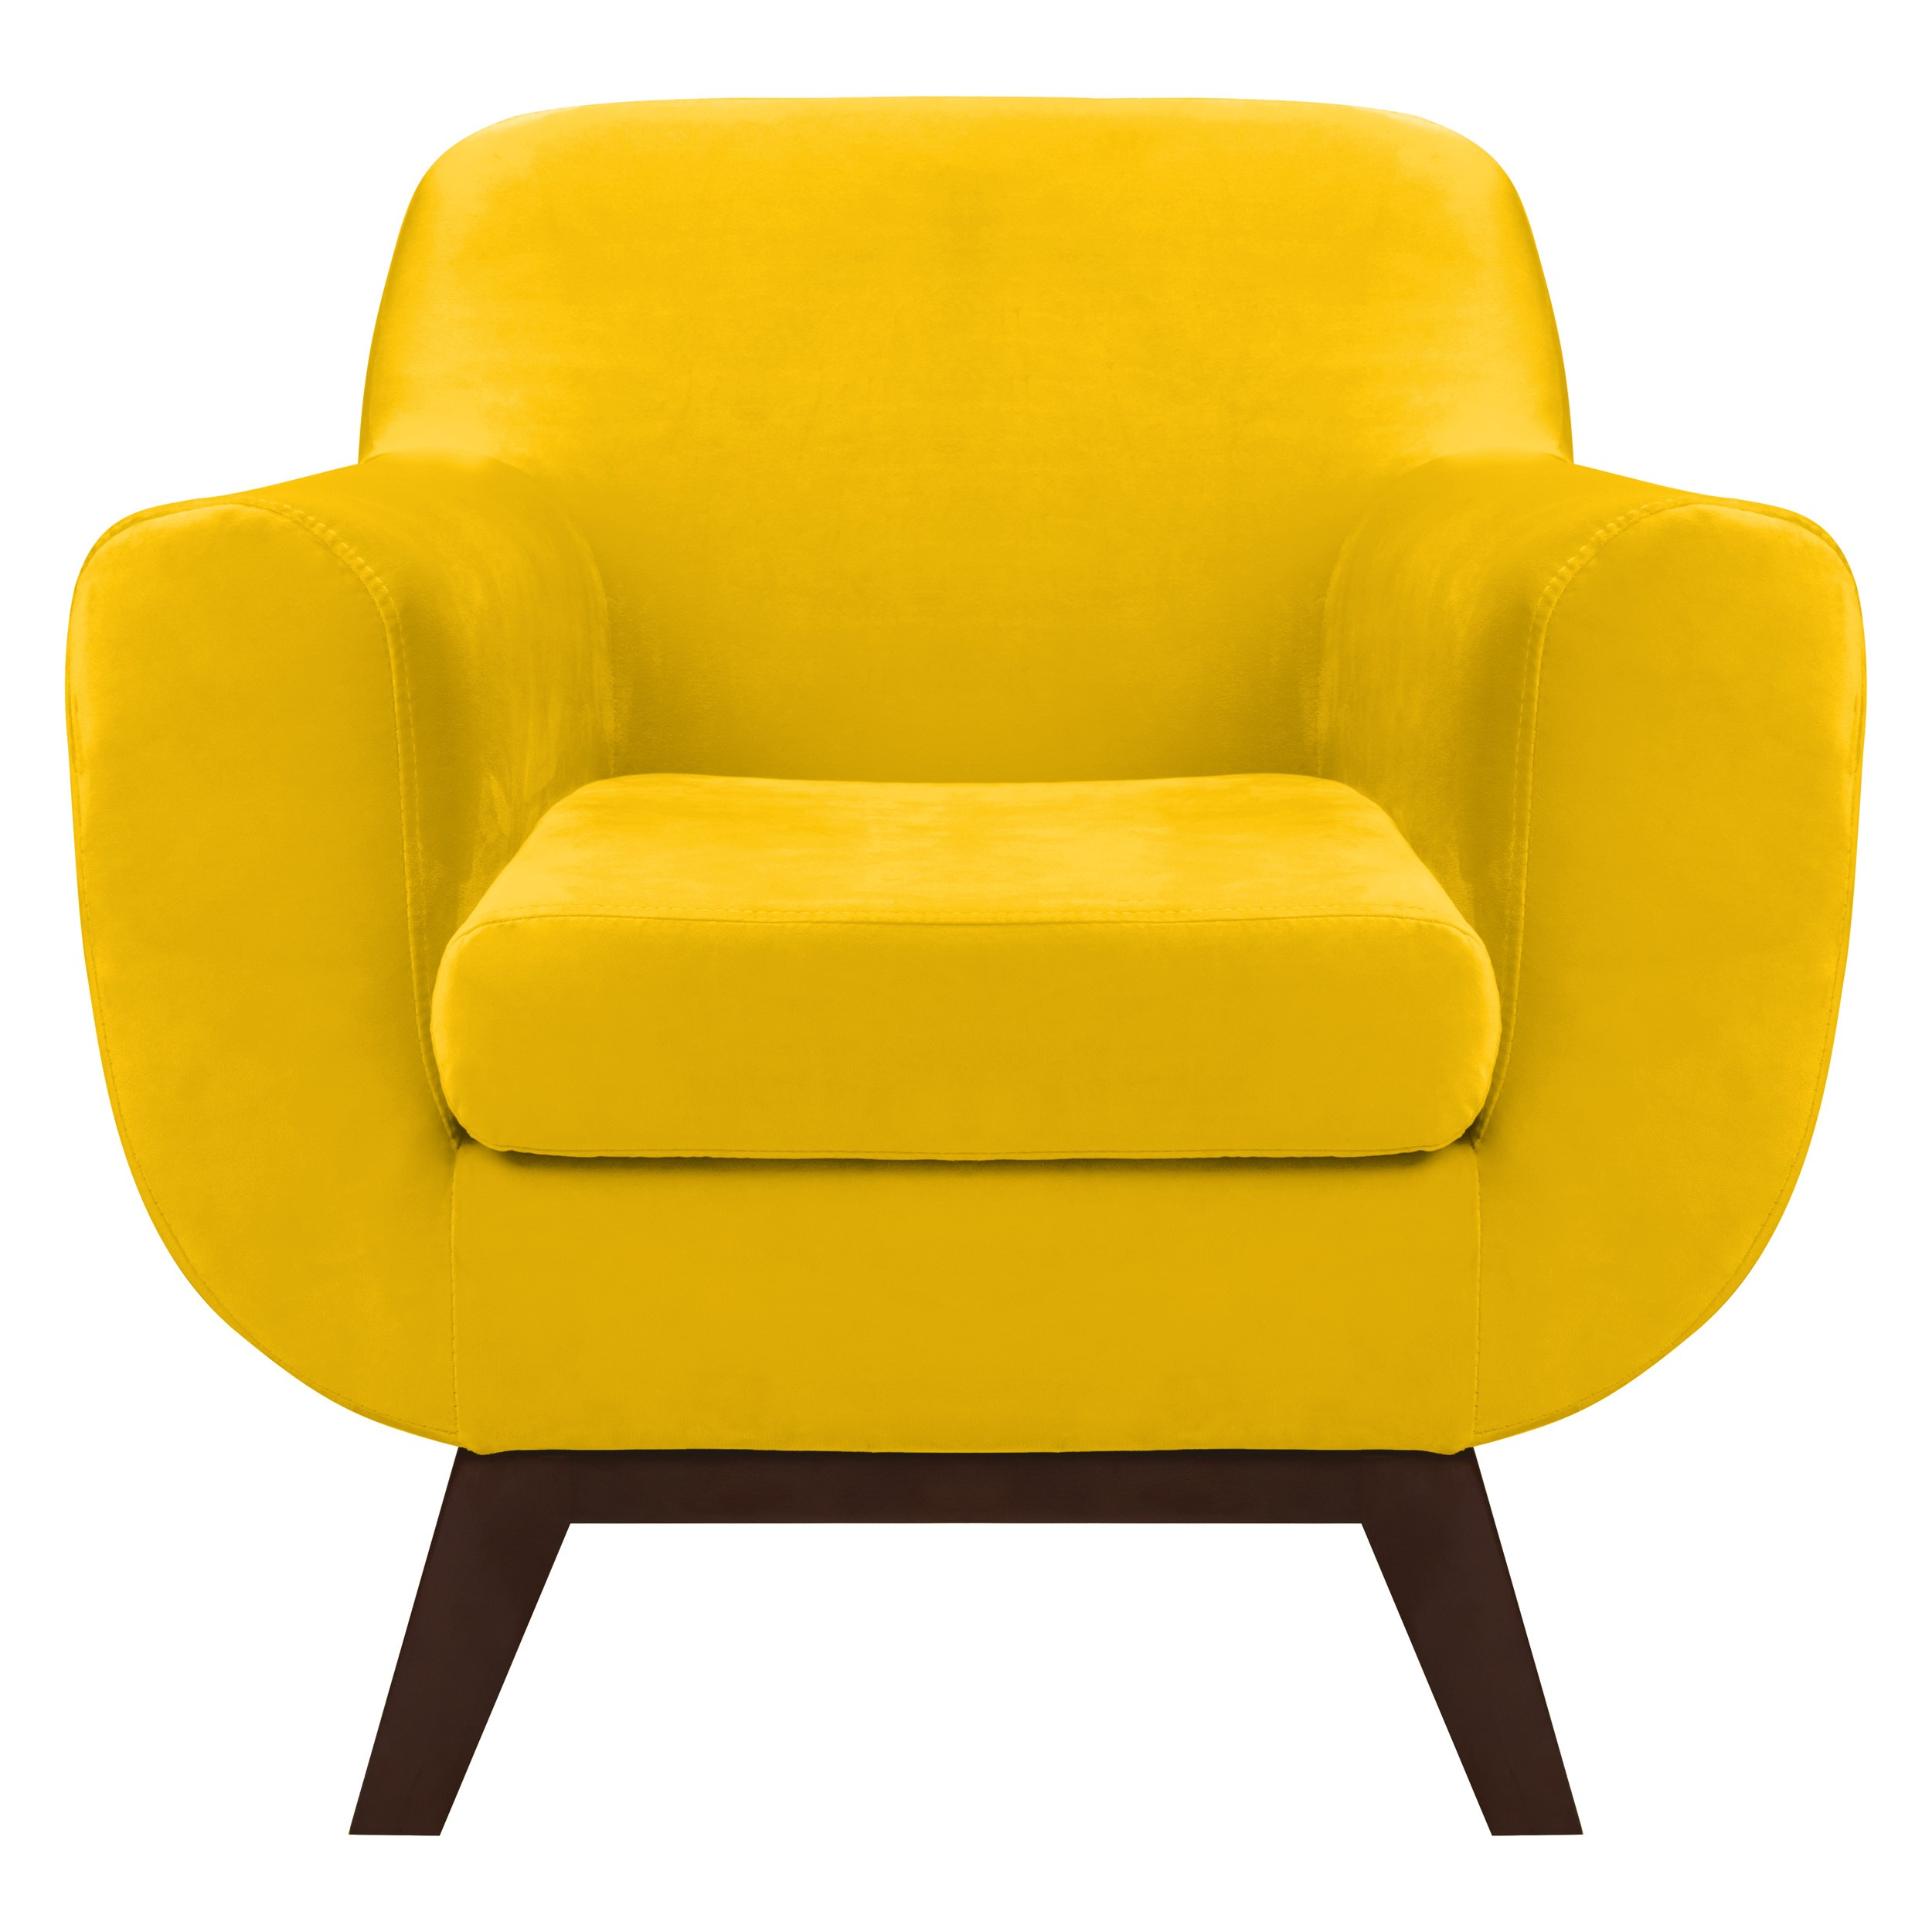 fauteuil copenhague en velours jaune d couvrez les fauteuils copenhague en velours jaunes. Black Bedroom Furniture Sets. Home Design Ideas